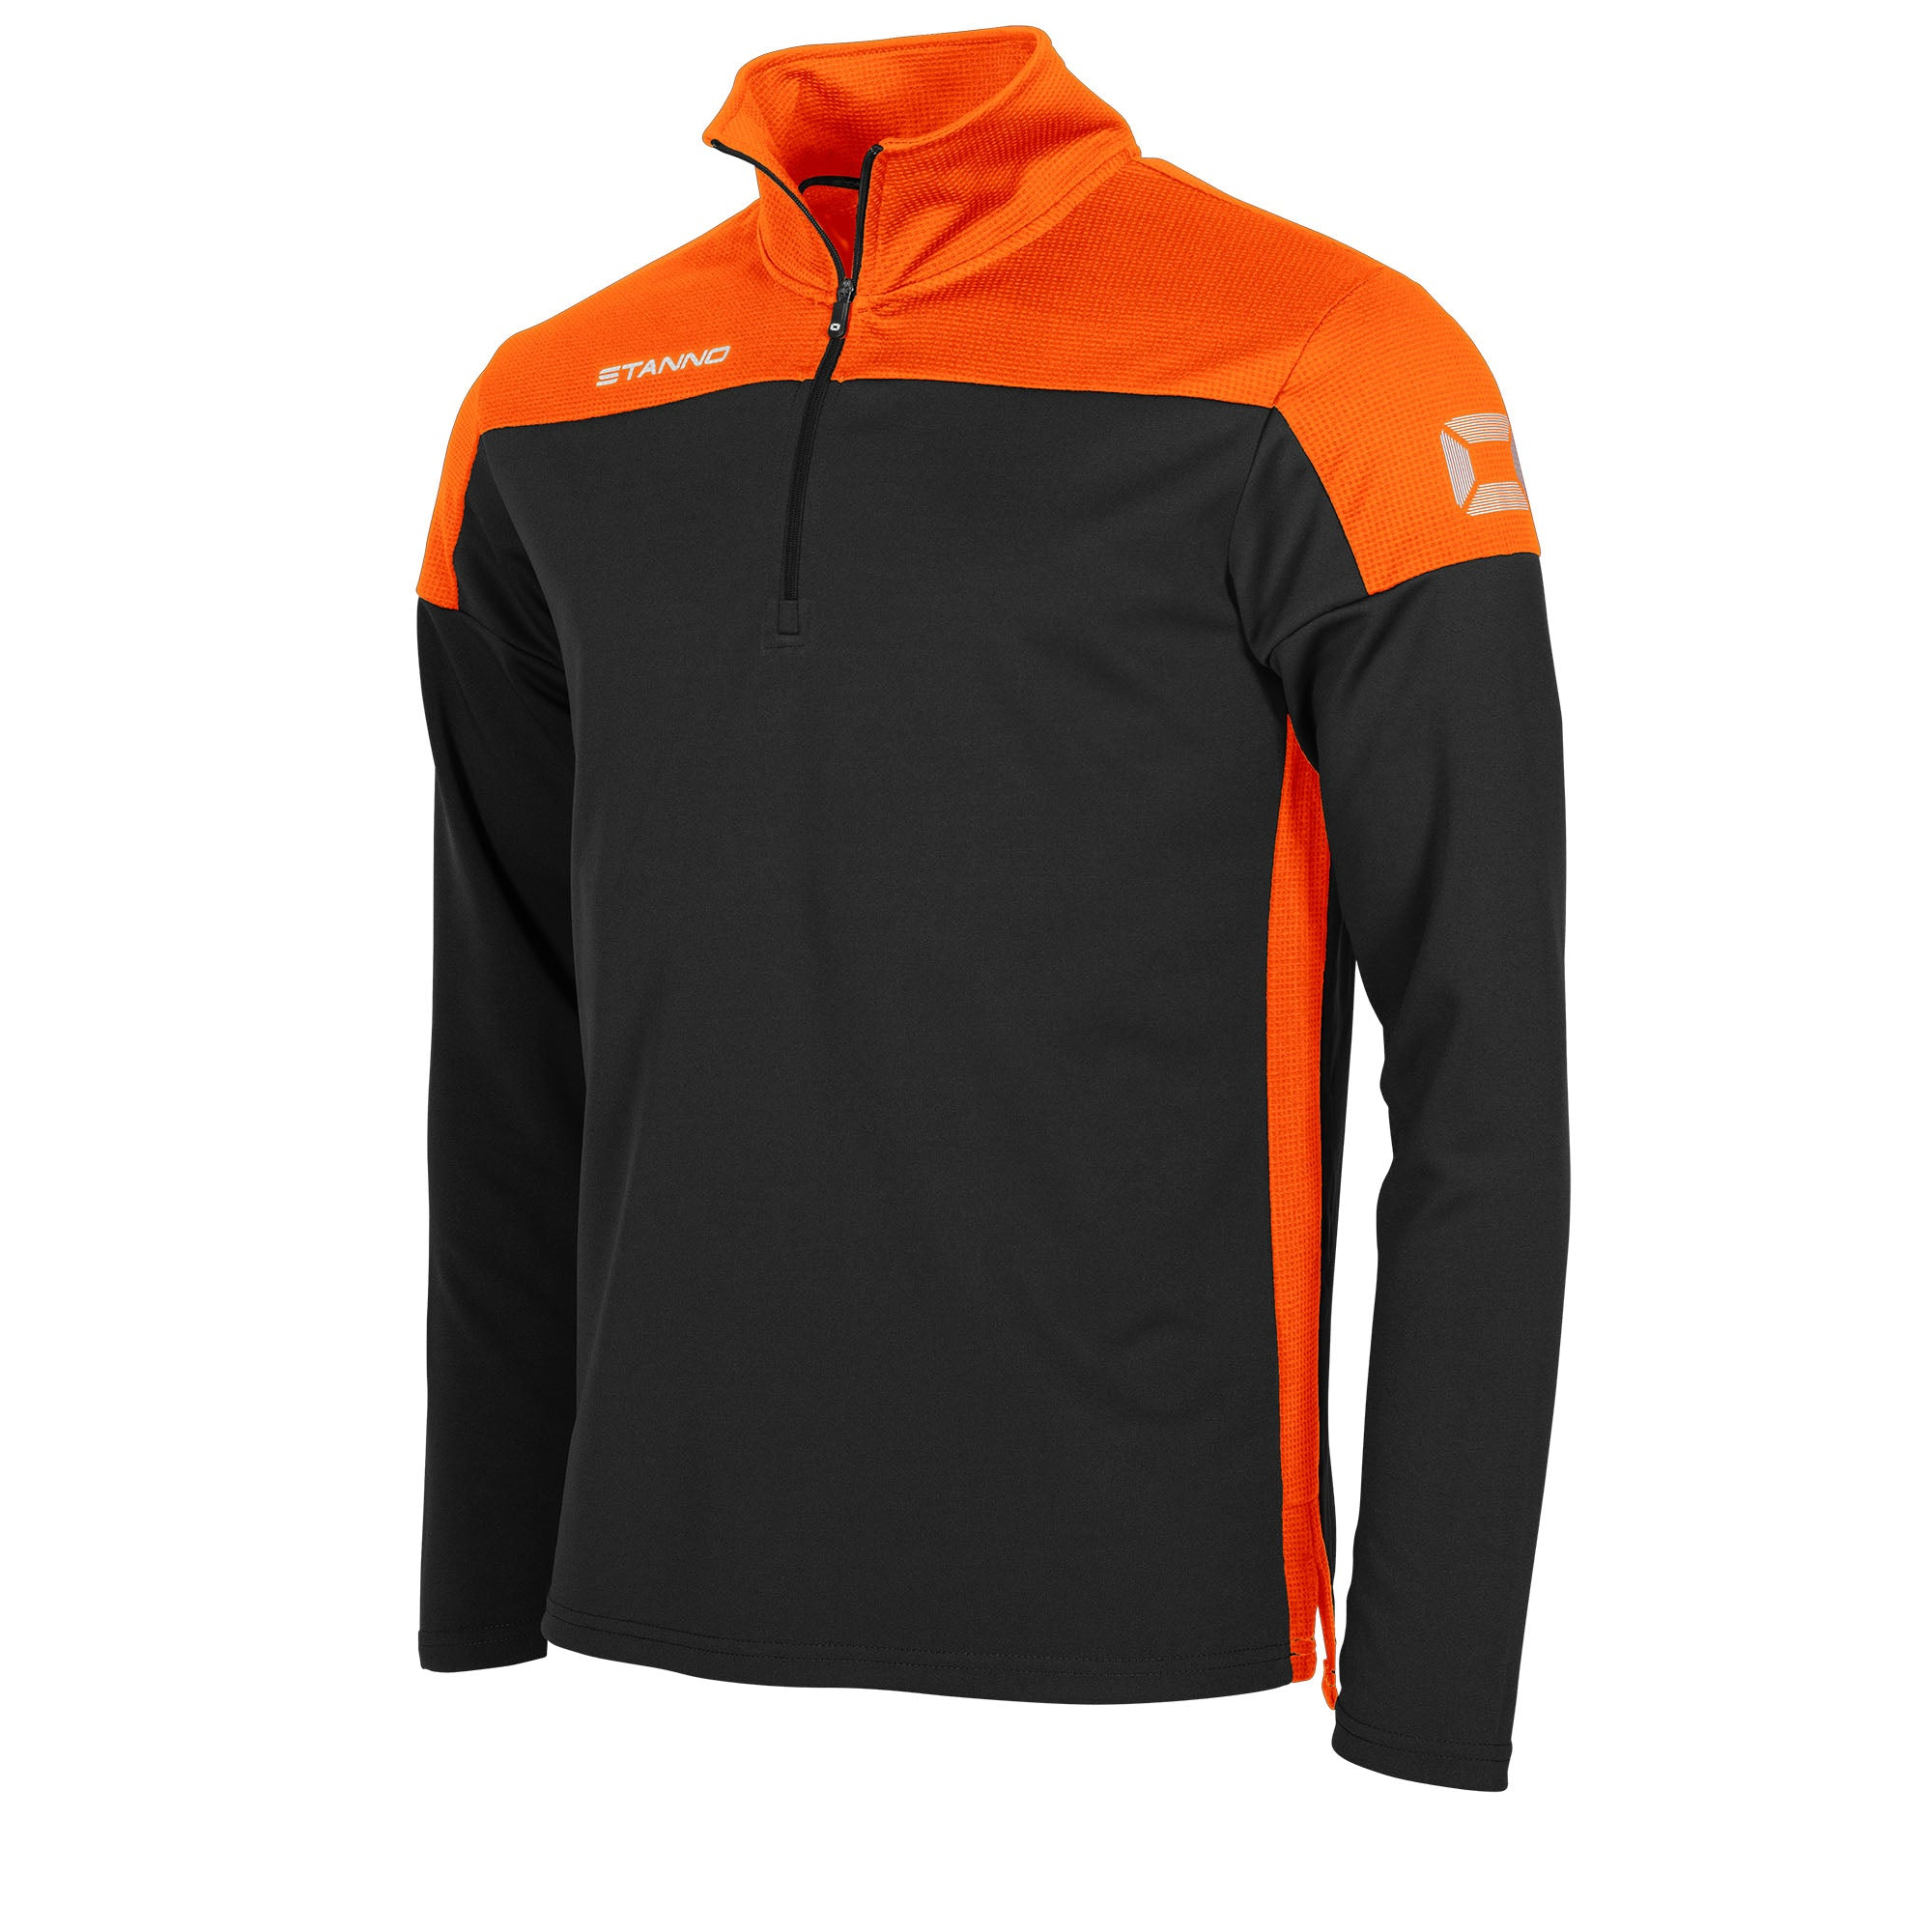 Stanno Pride Training 1/4 Zip in black with orange contrast shoulder and side panel